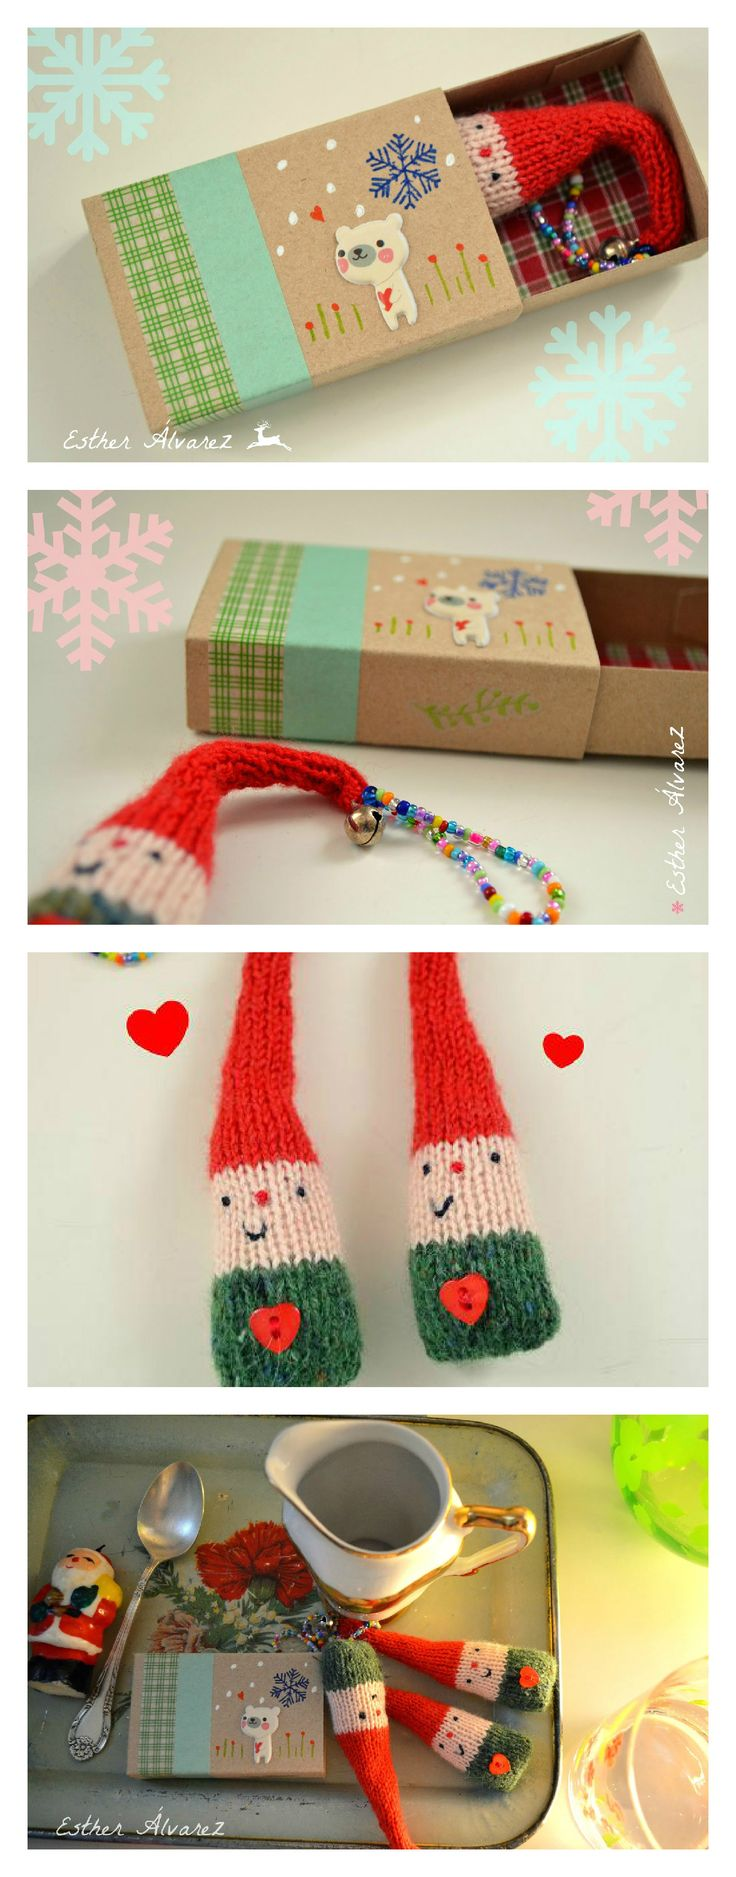 crochet something similar to send to the family that uses elf on the shelf